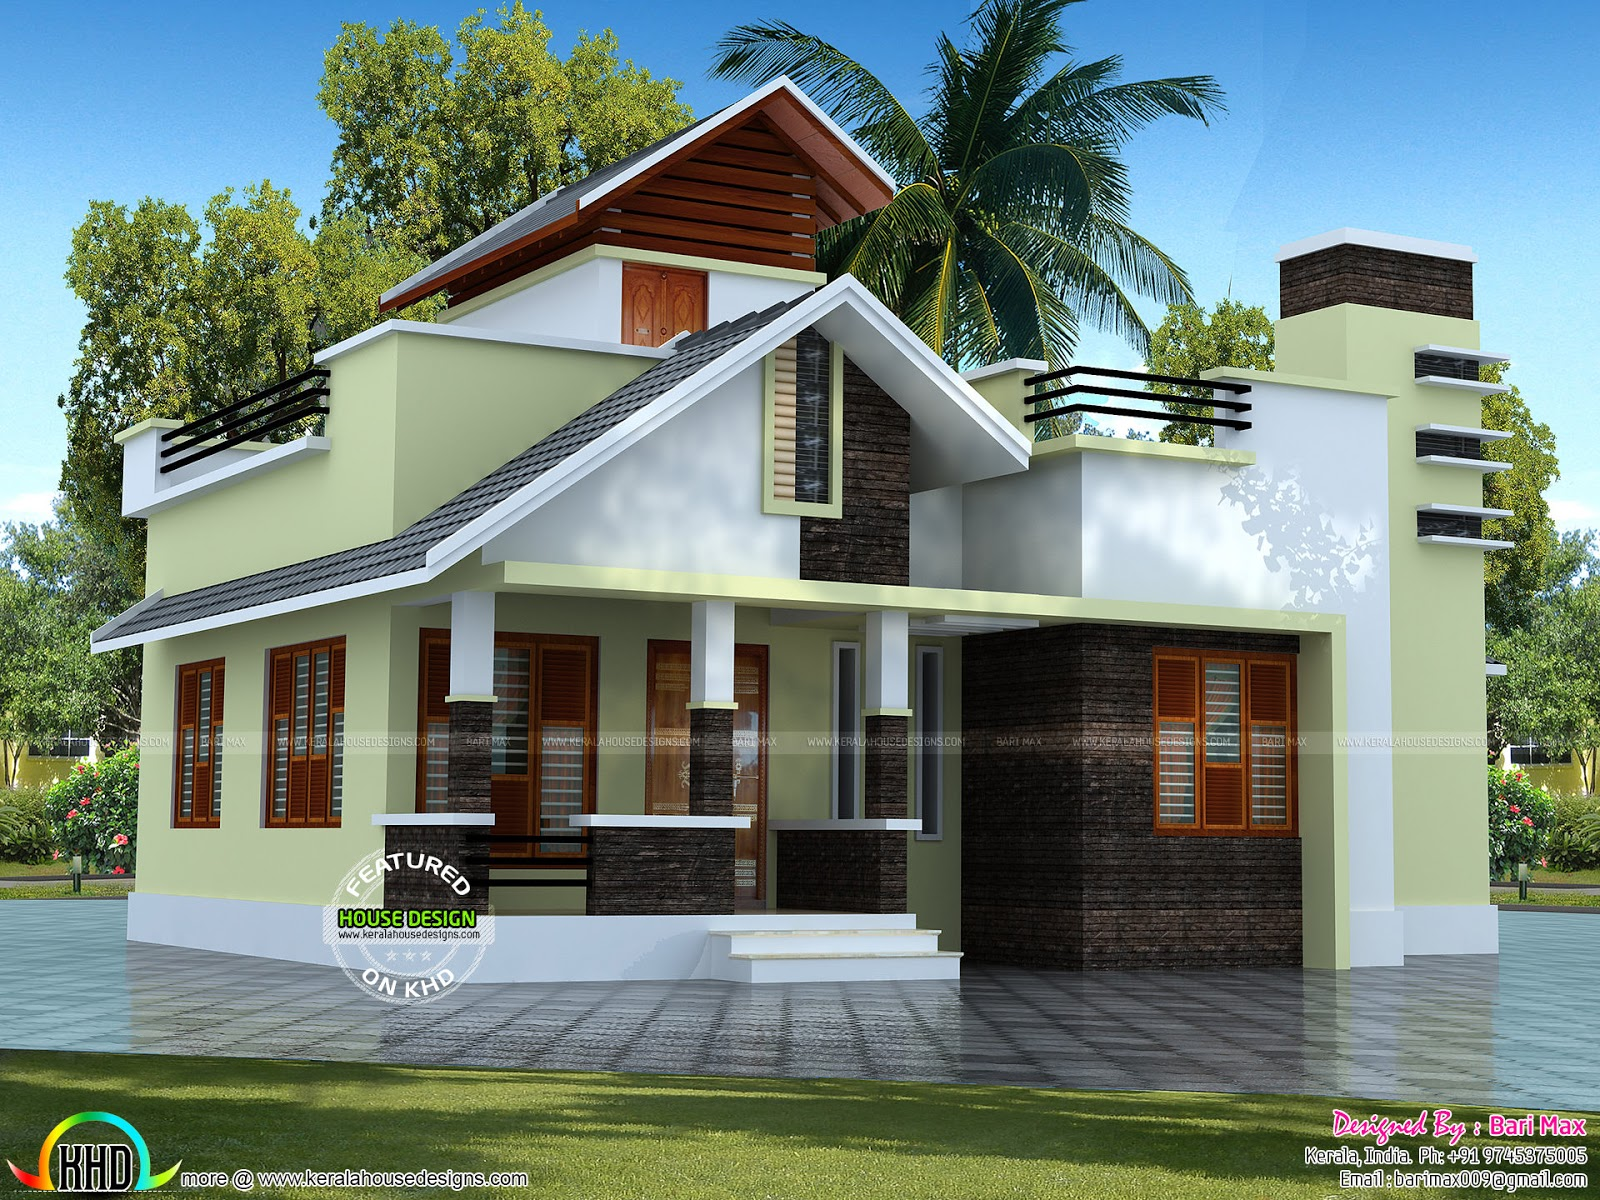 Low Cost Modern Kerala Home Plan 8547872392: Low Cost Single Floor Home 1050 Sq-ft